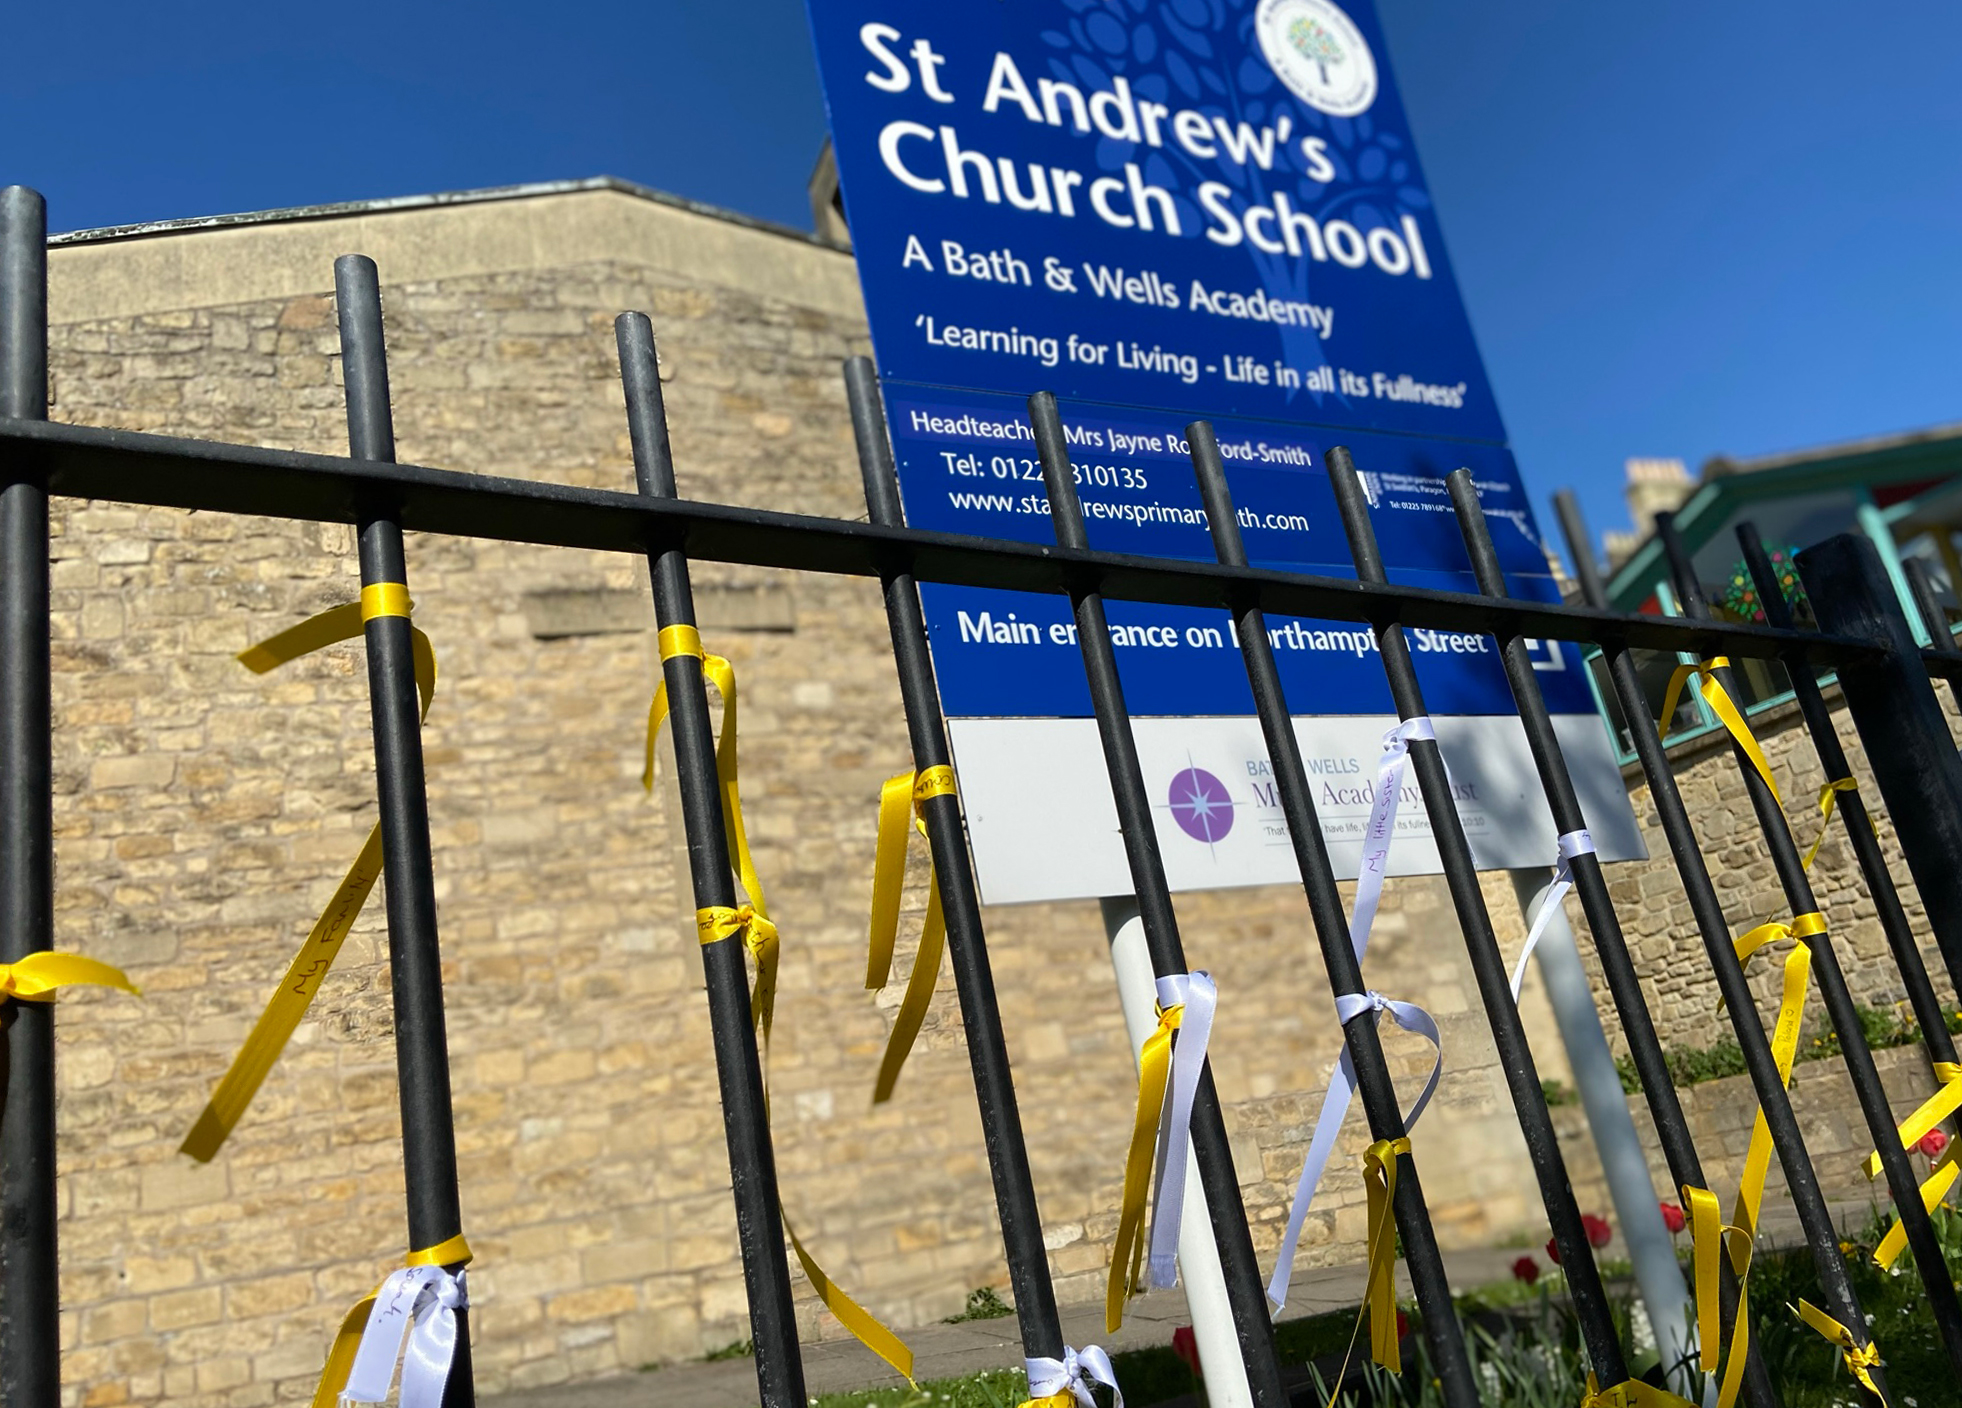 Messages of Hope - St Andrew's Church School